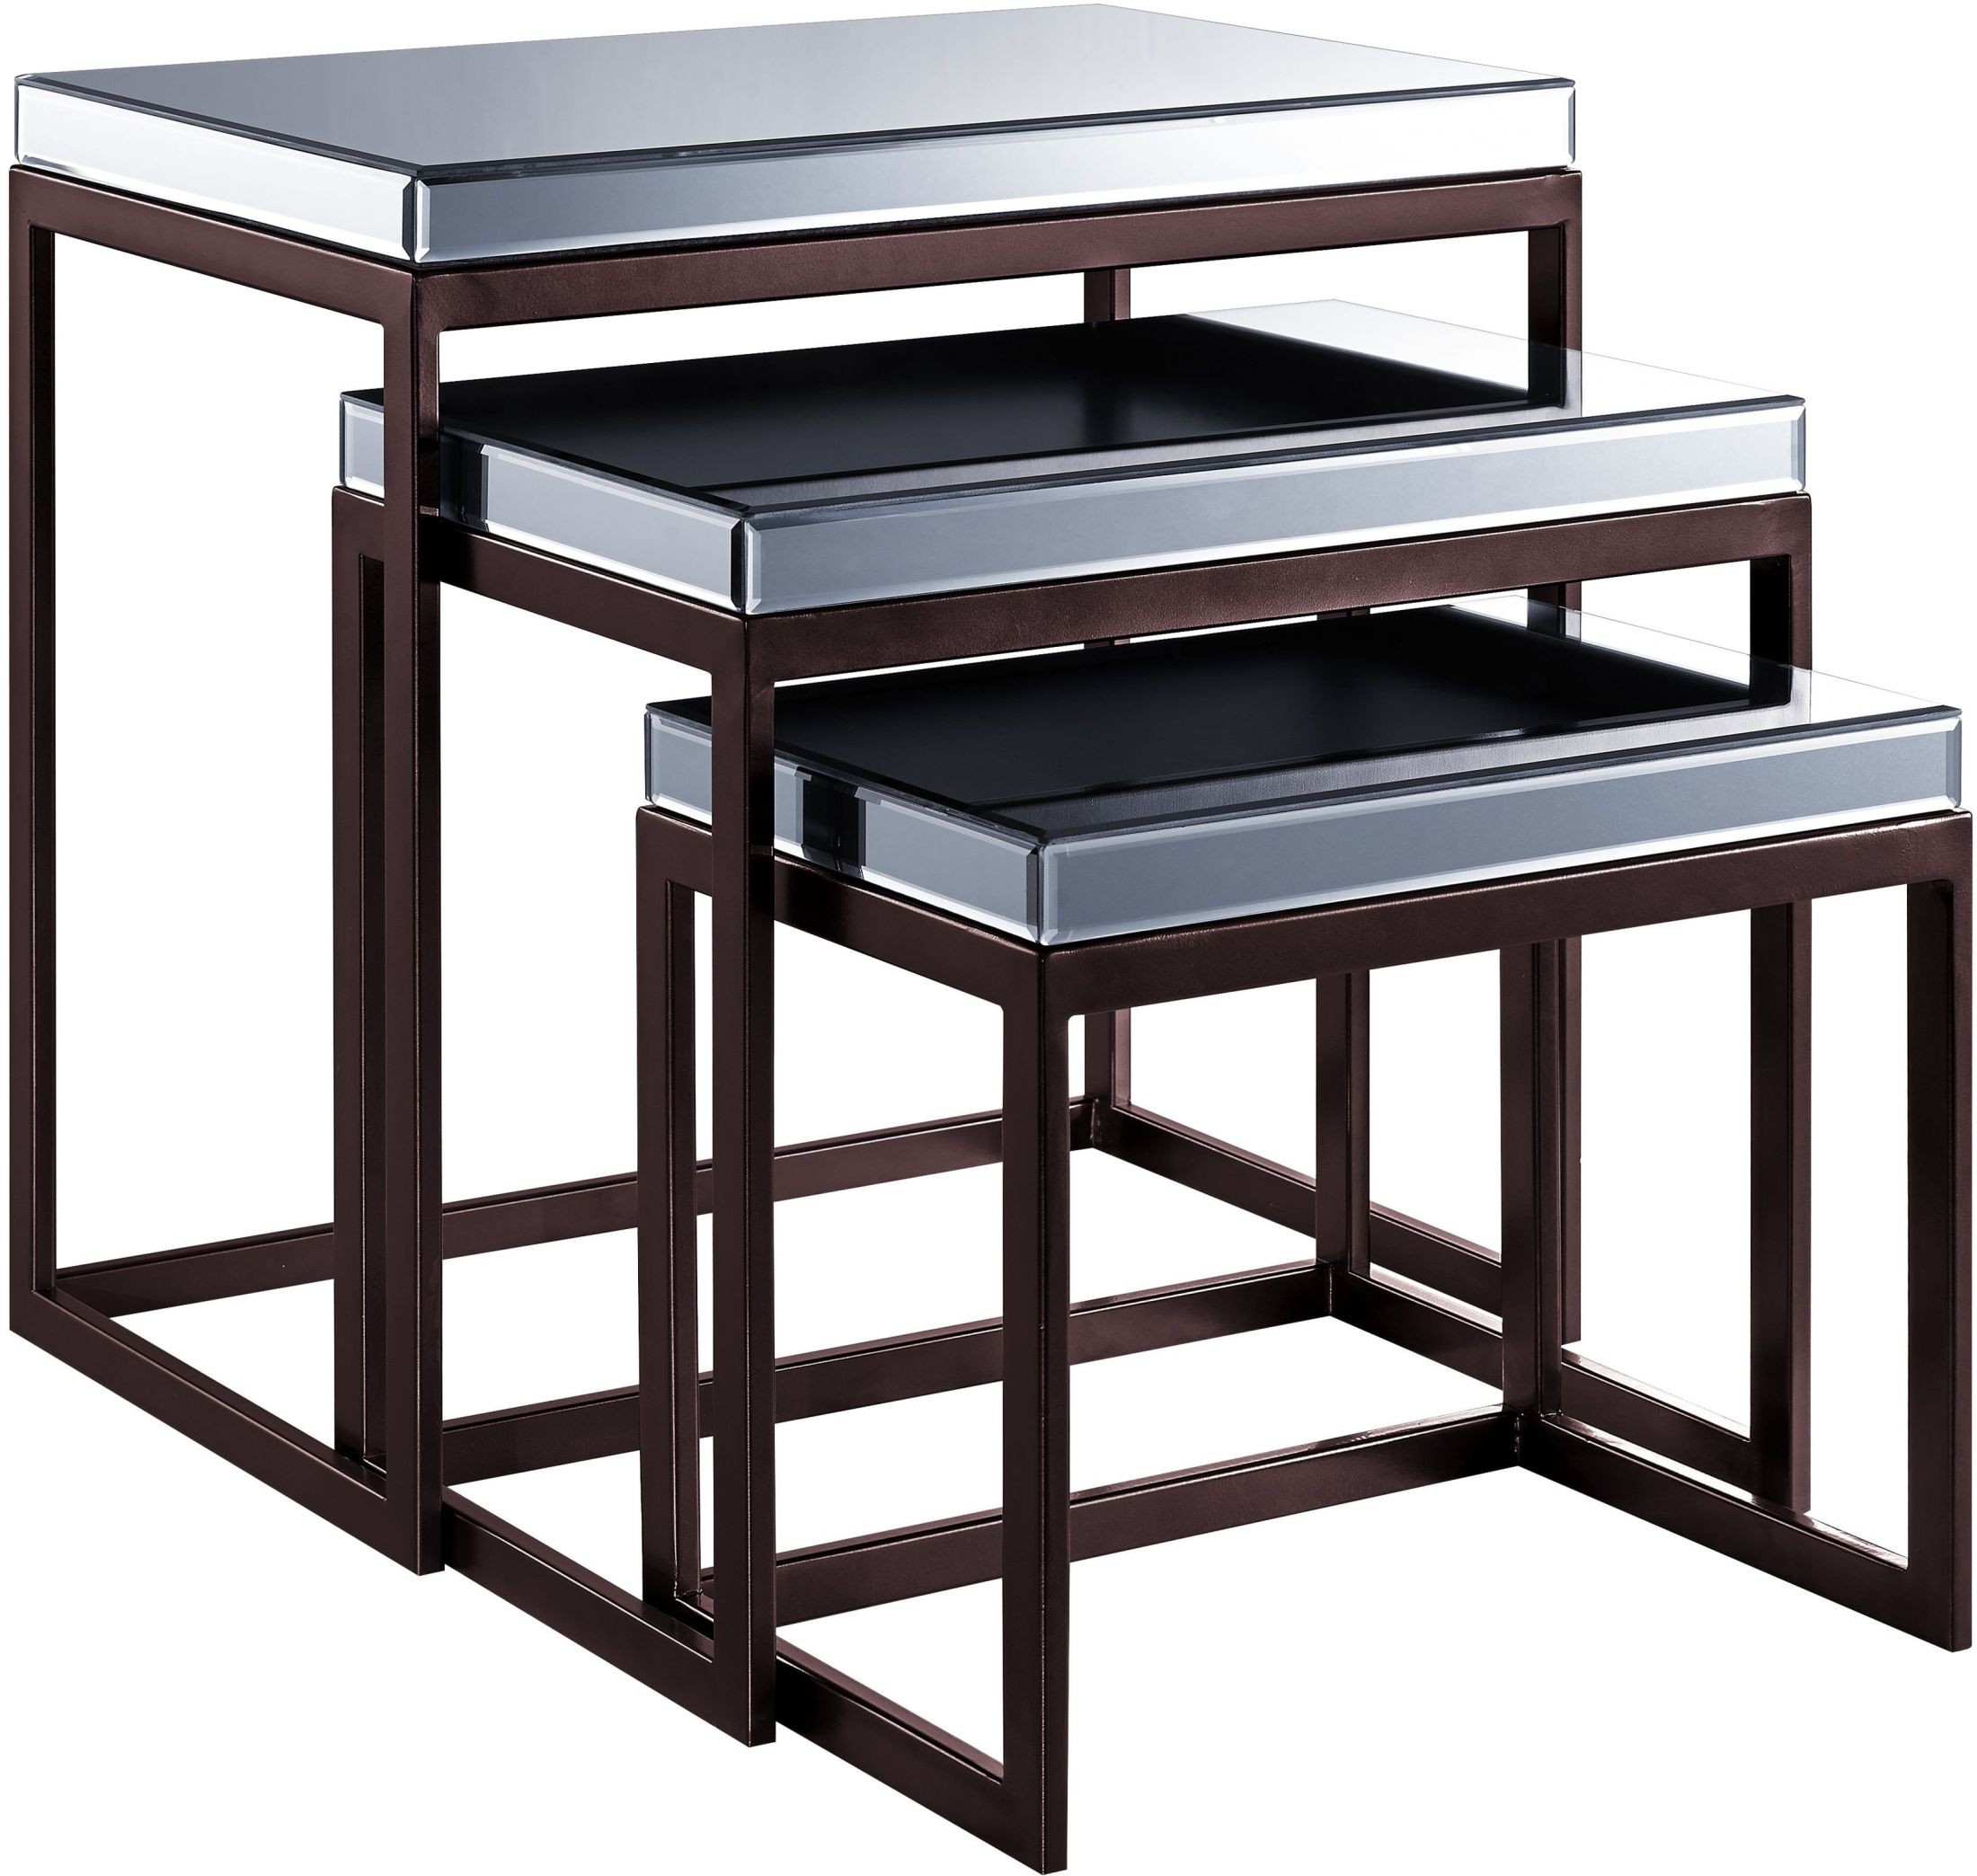 Smoked Mirrored Metal Base Nesting Tables From Pulaski Coleman Furniture